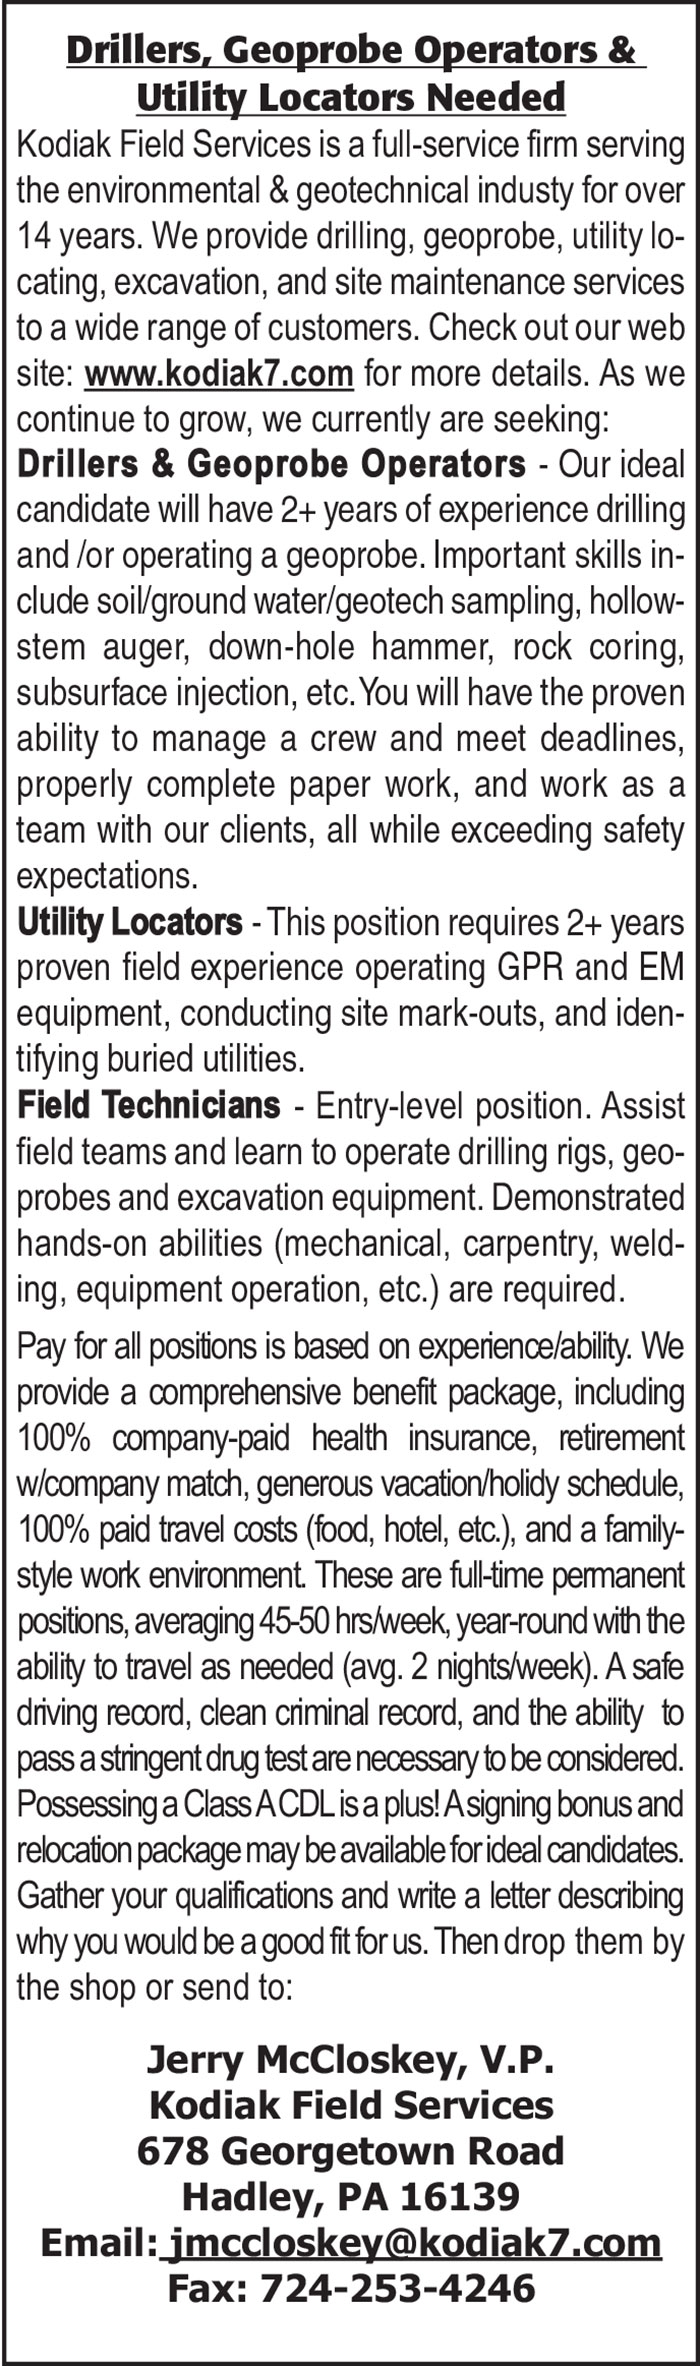 DRILLERS, GEOPROBE OPERATORS & UTILITY LOCATORS NEEDED